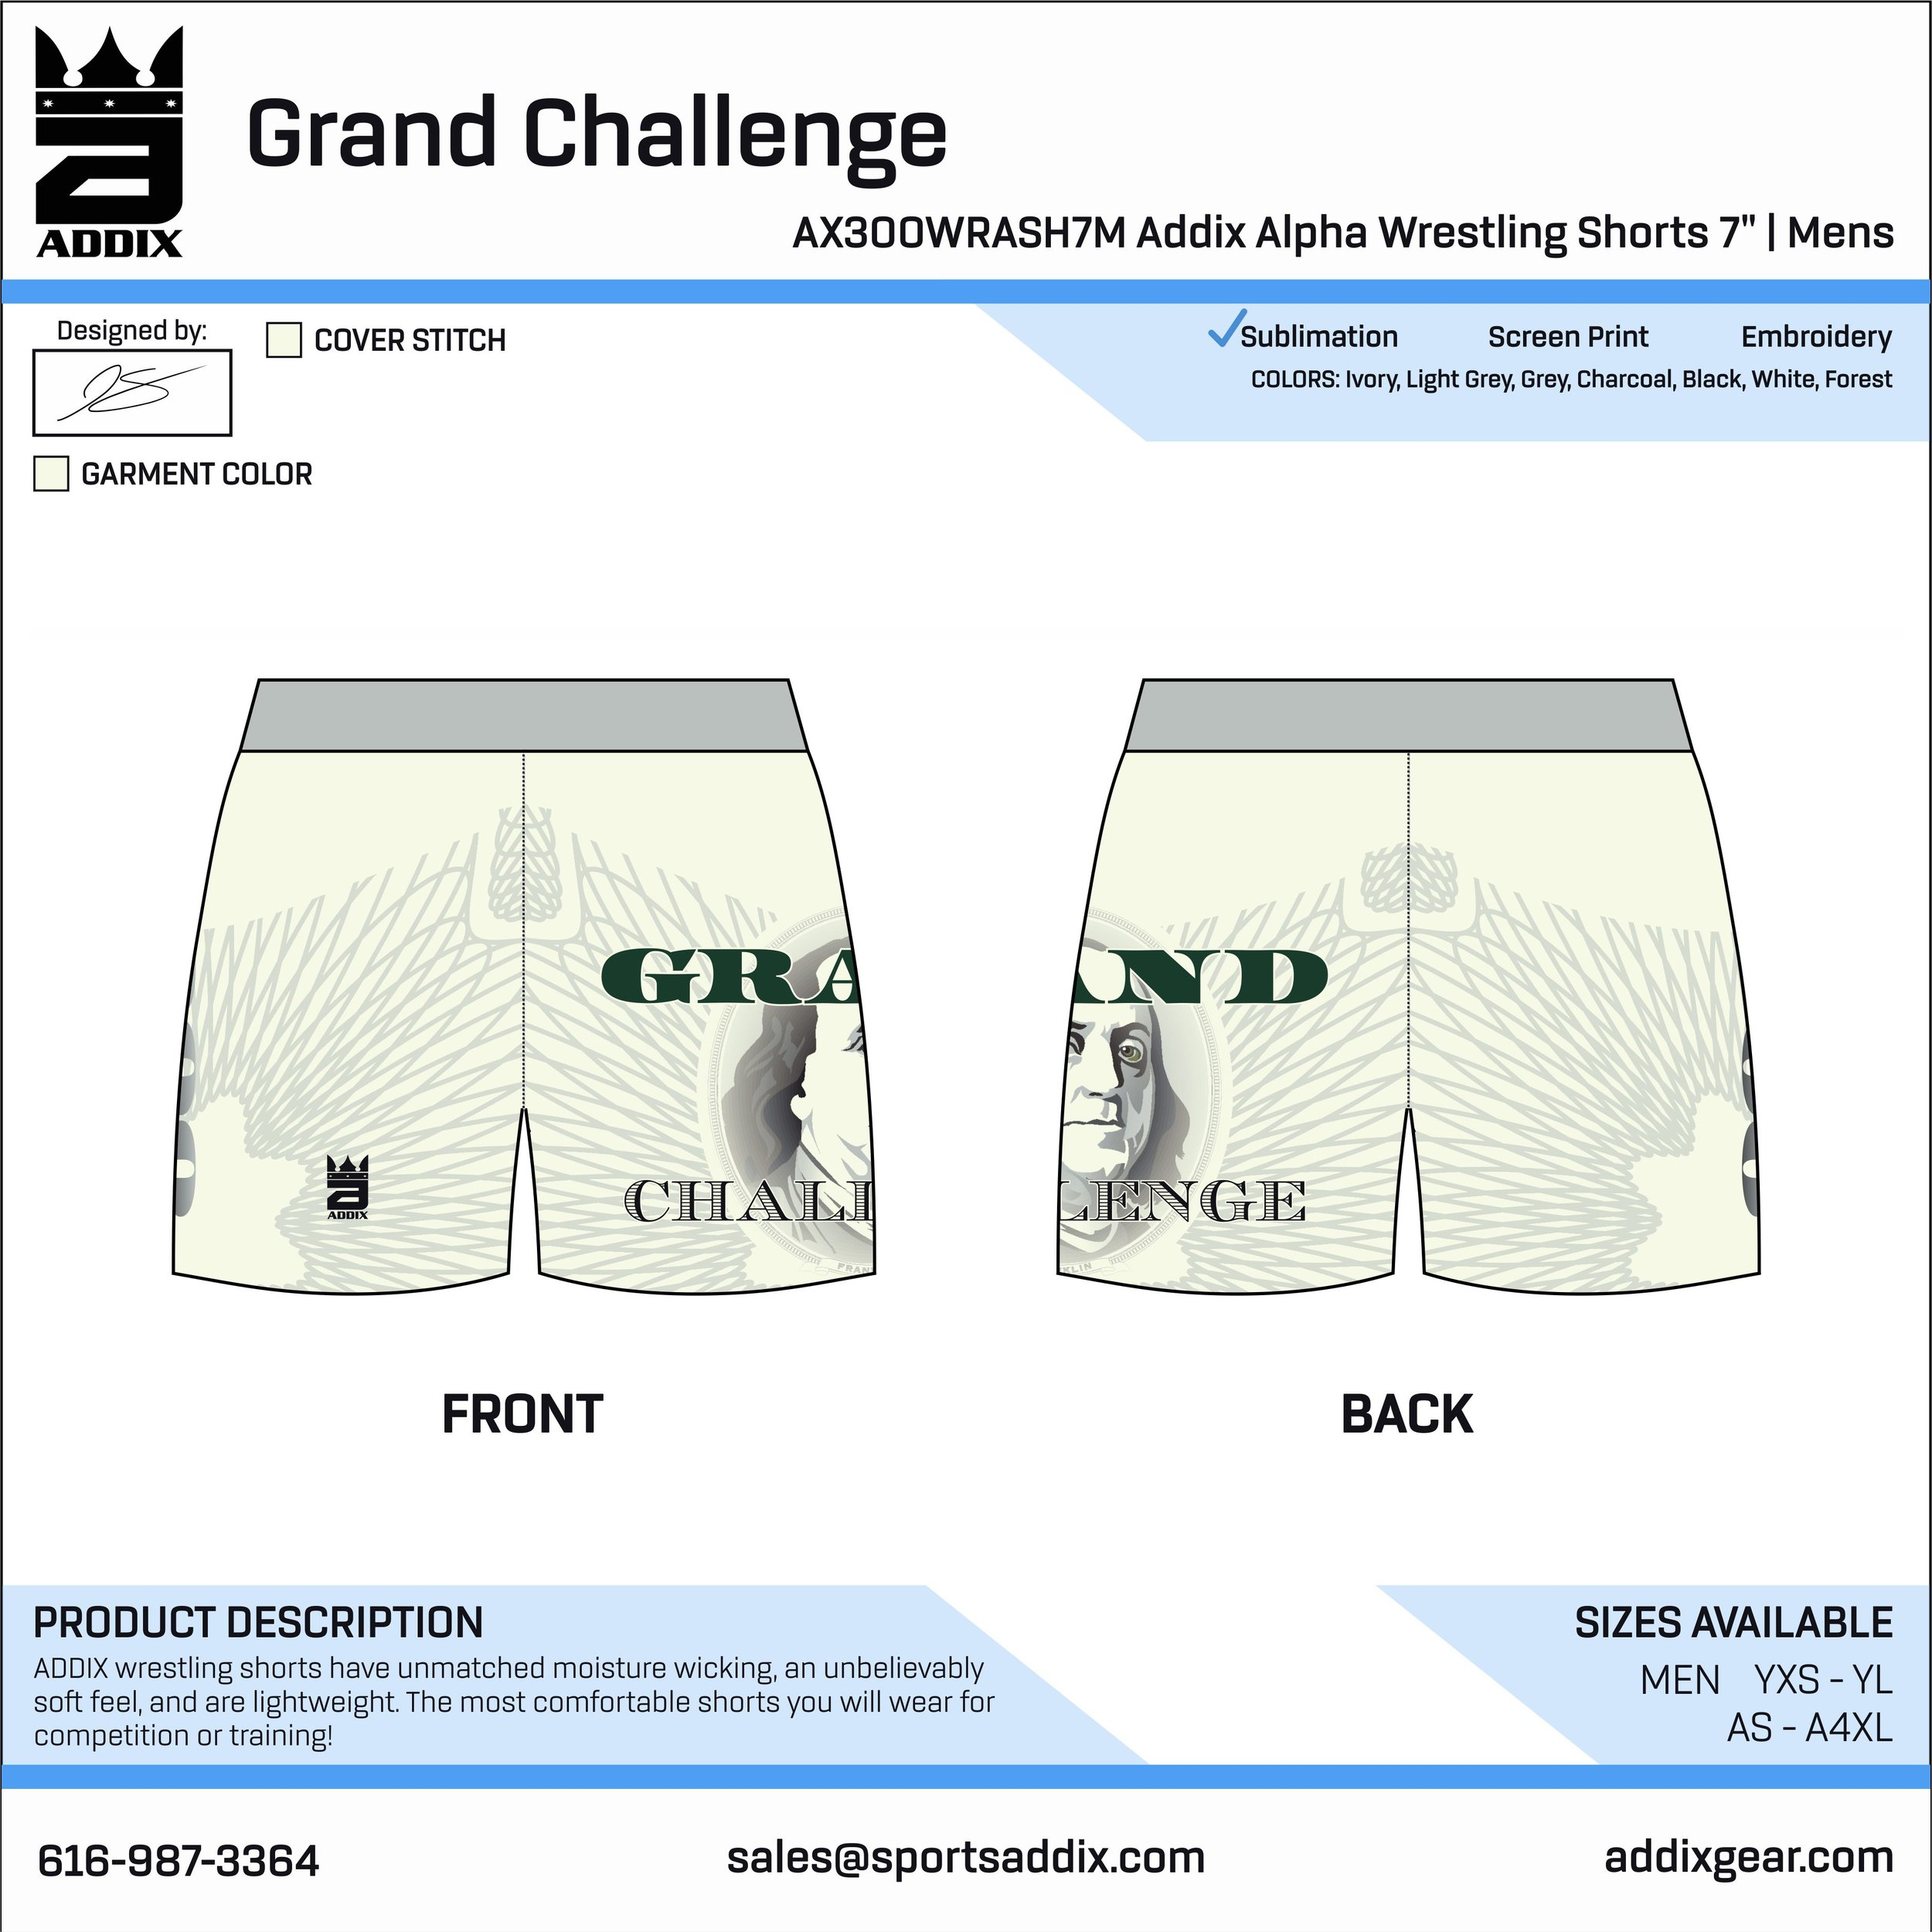 Grand Challenge_2019_3-5_JE_Alpha Wrestling Shorts.jpg